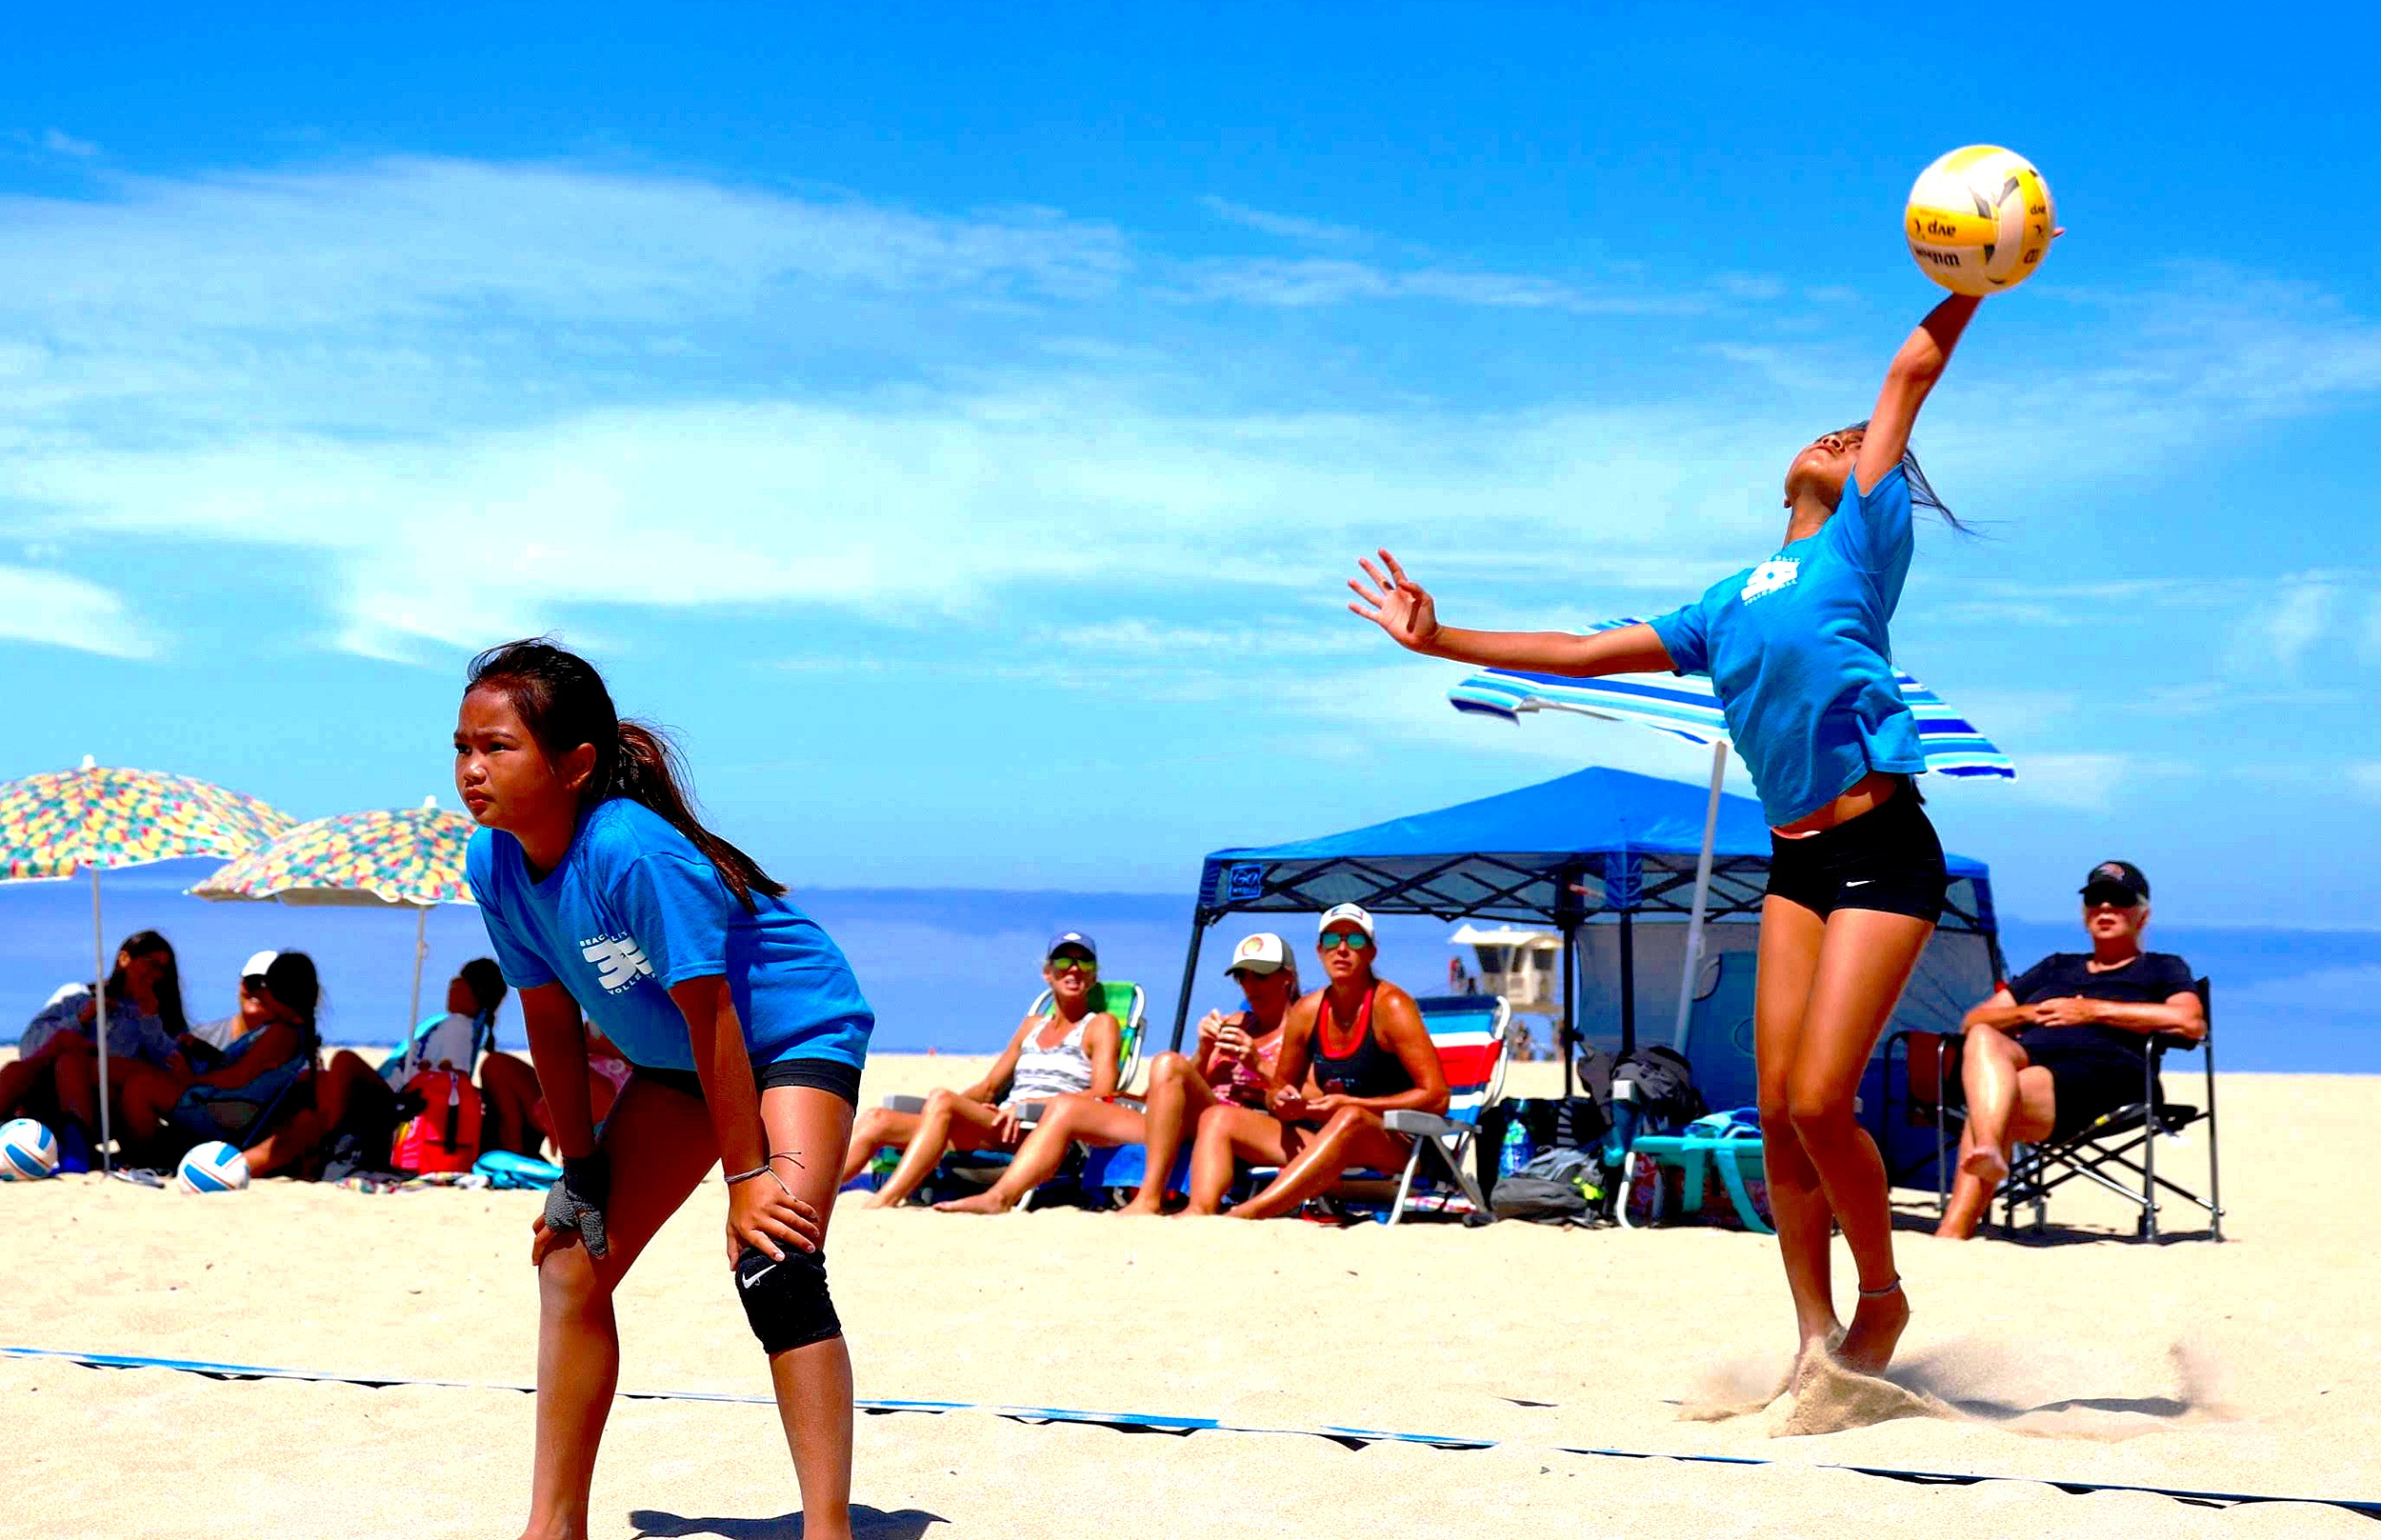 FALL BEACH TOURNAMENT SERIES - presented by Beach Elite and AVP America